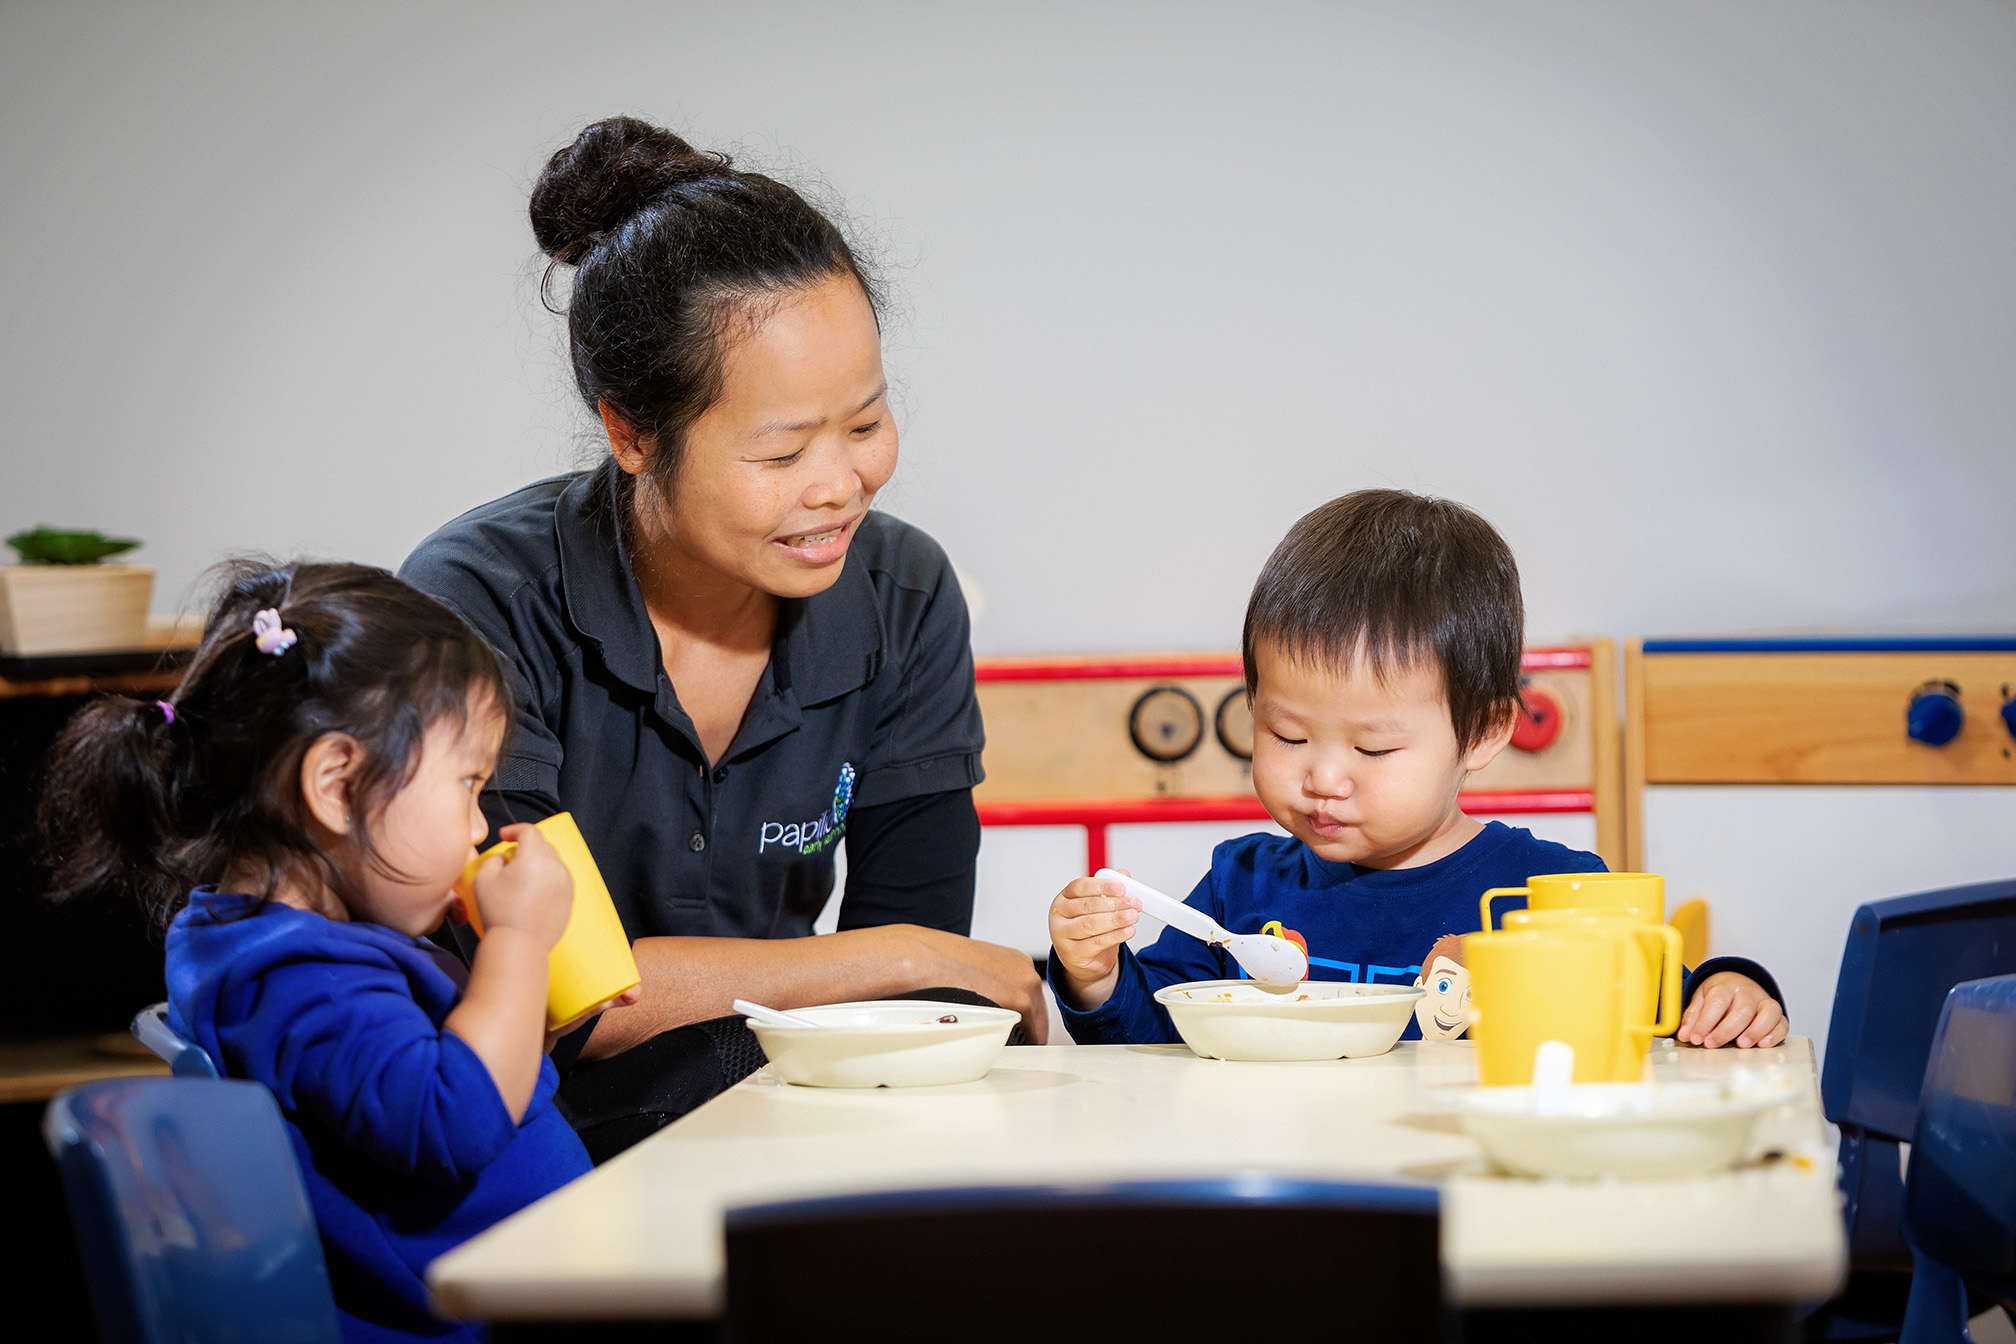 Child care educator sitting at table with young children eating lunch